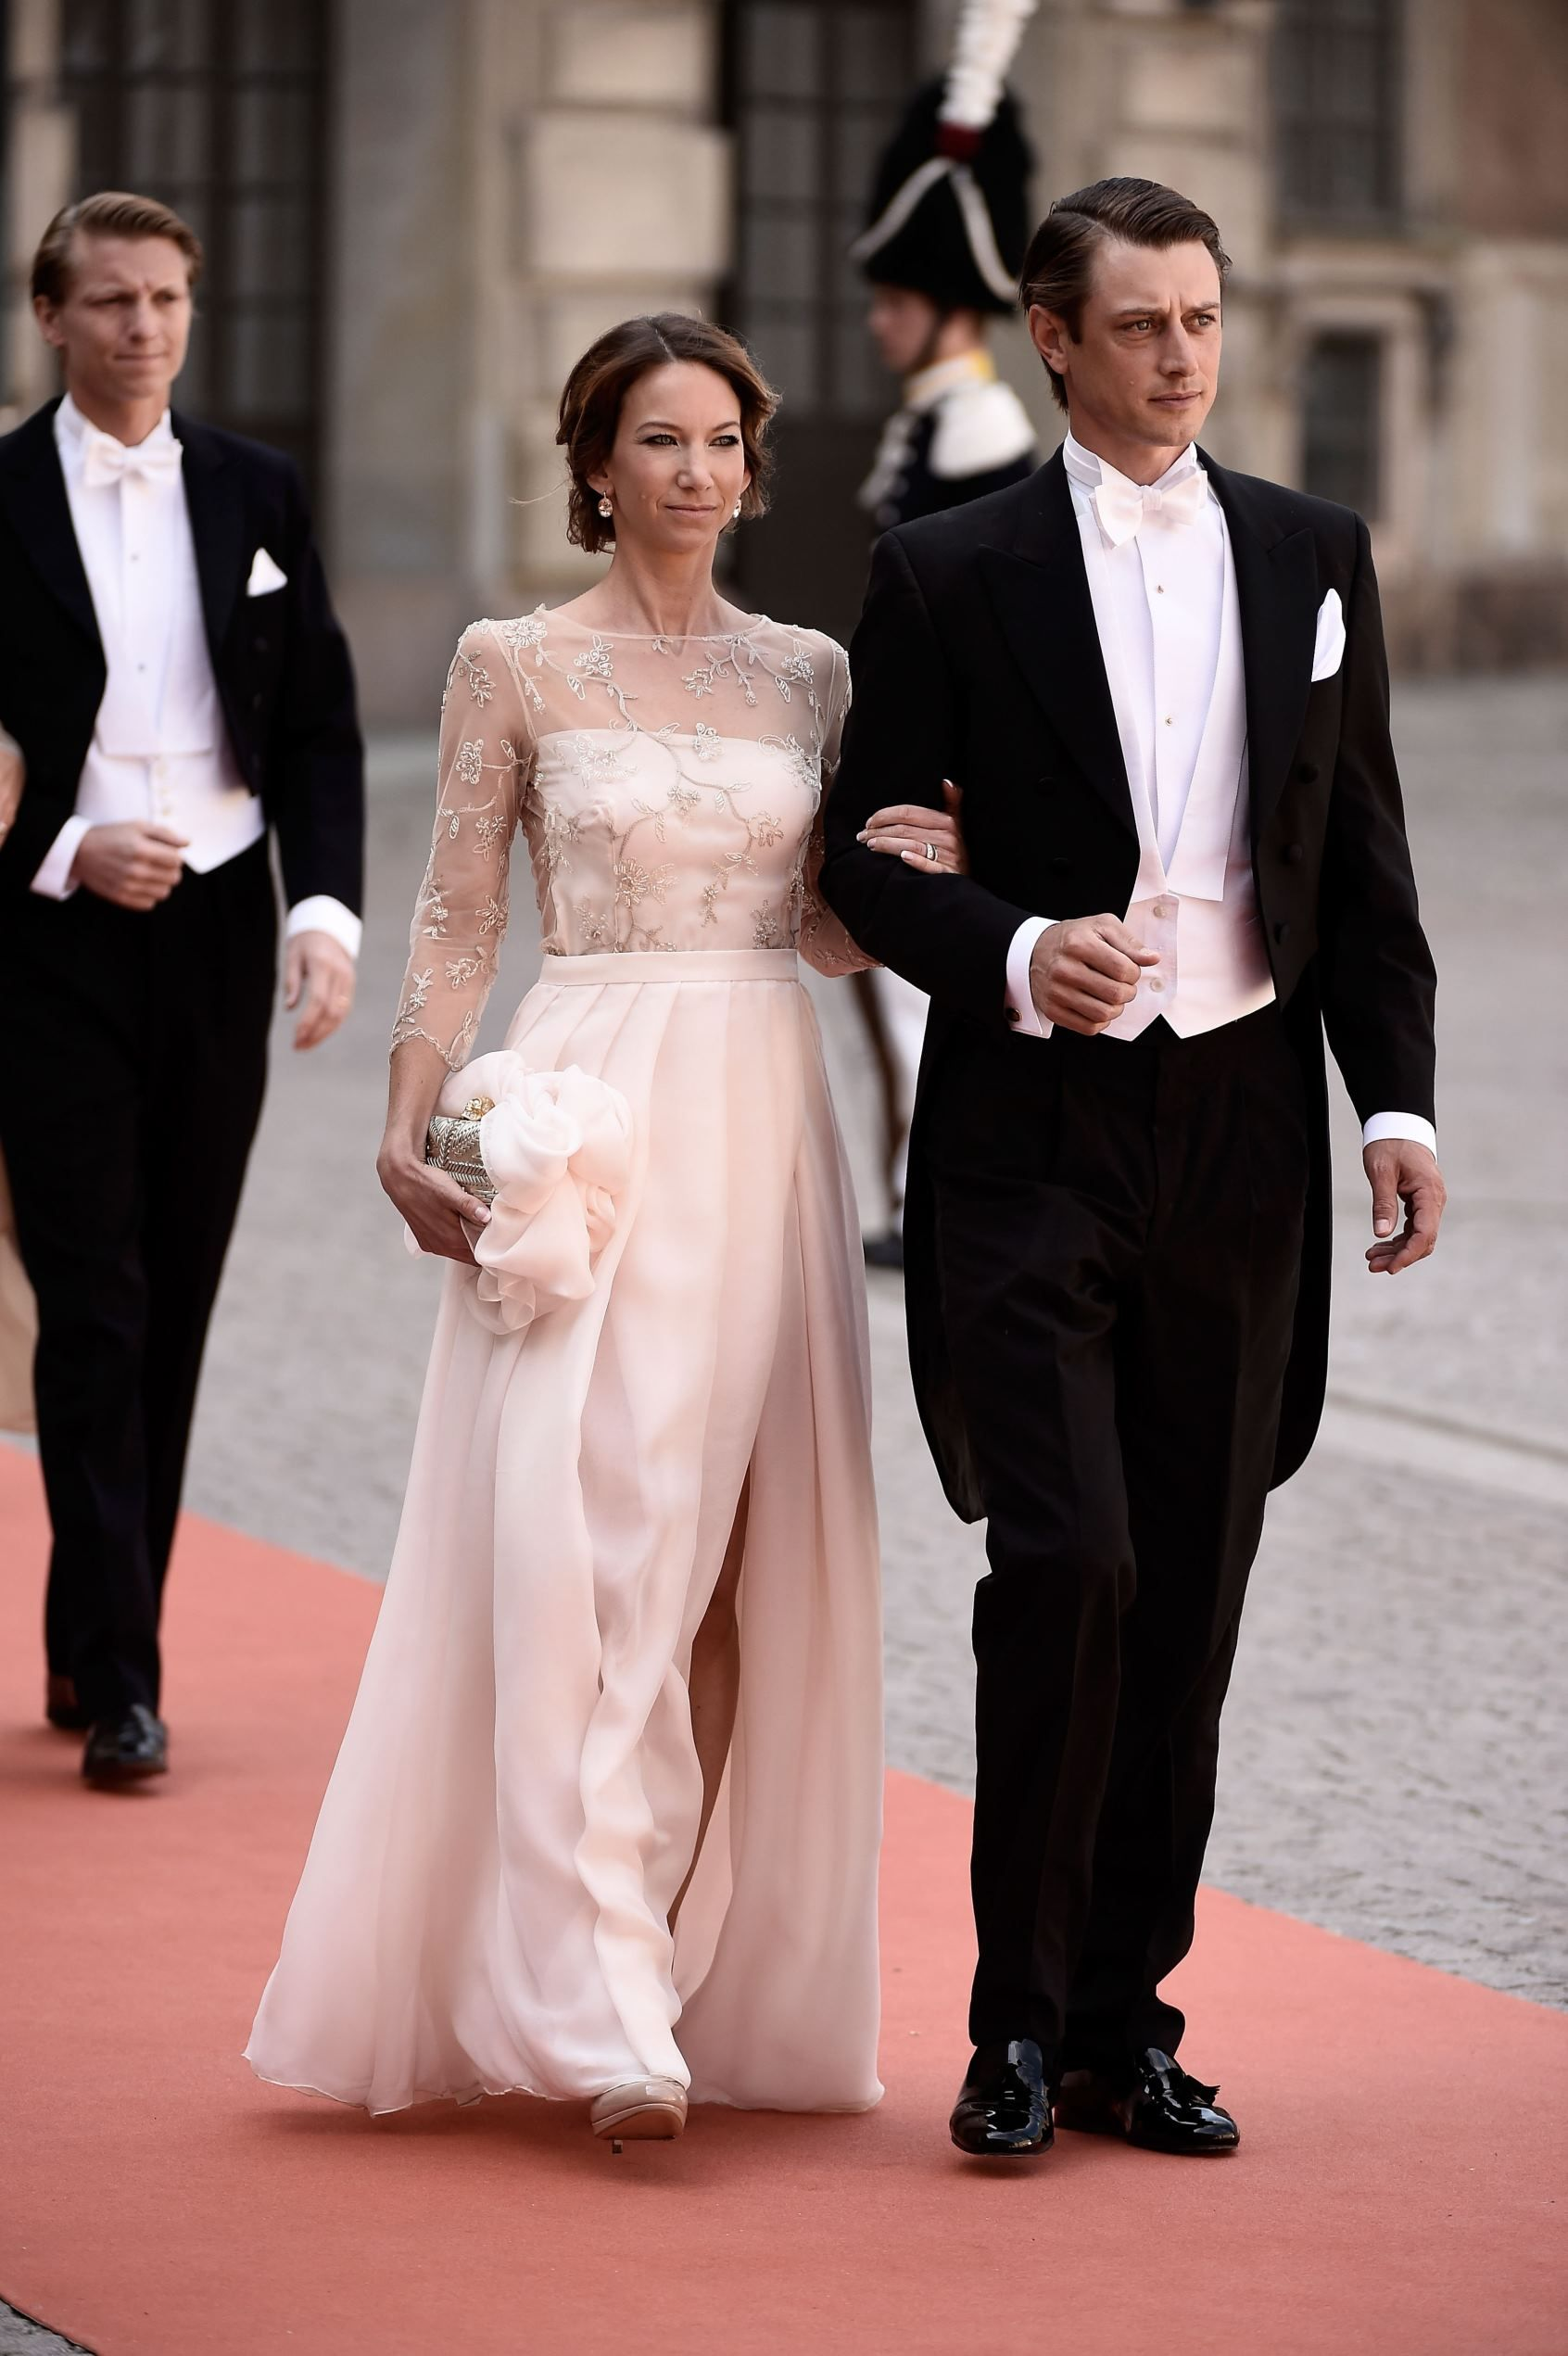 52 Dresses From the Swedish Royal Wedding You Have to See to Believe